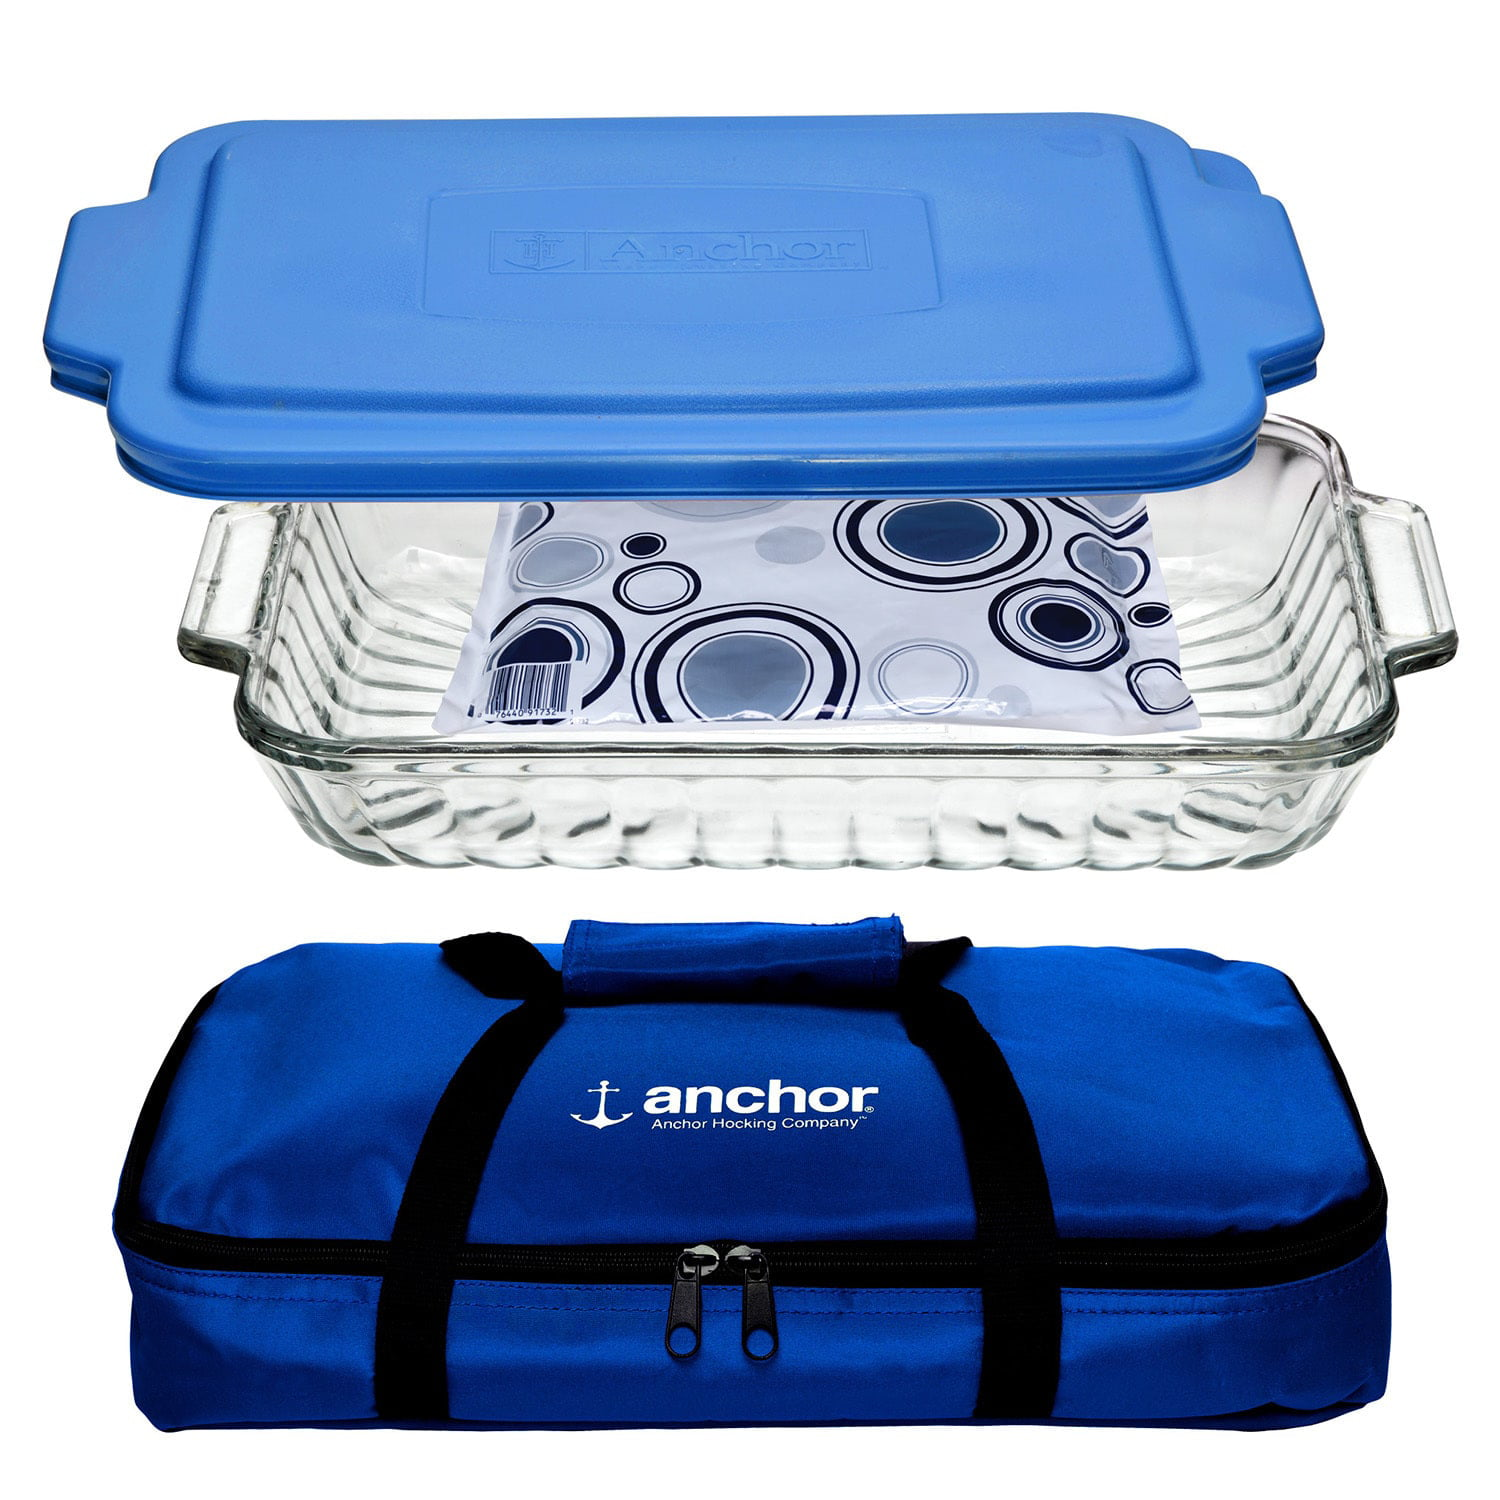 Anchor Hocking 3-Piece Bakeware Set, Clear by Anchor Hocking